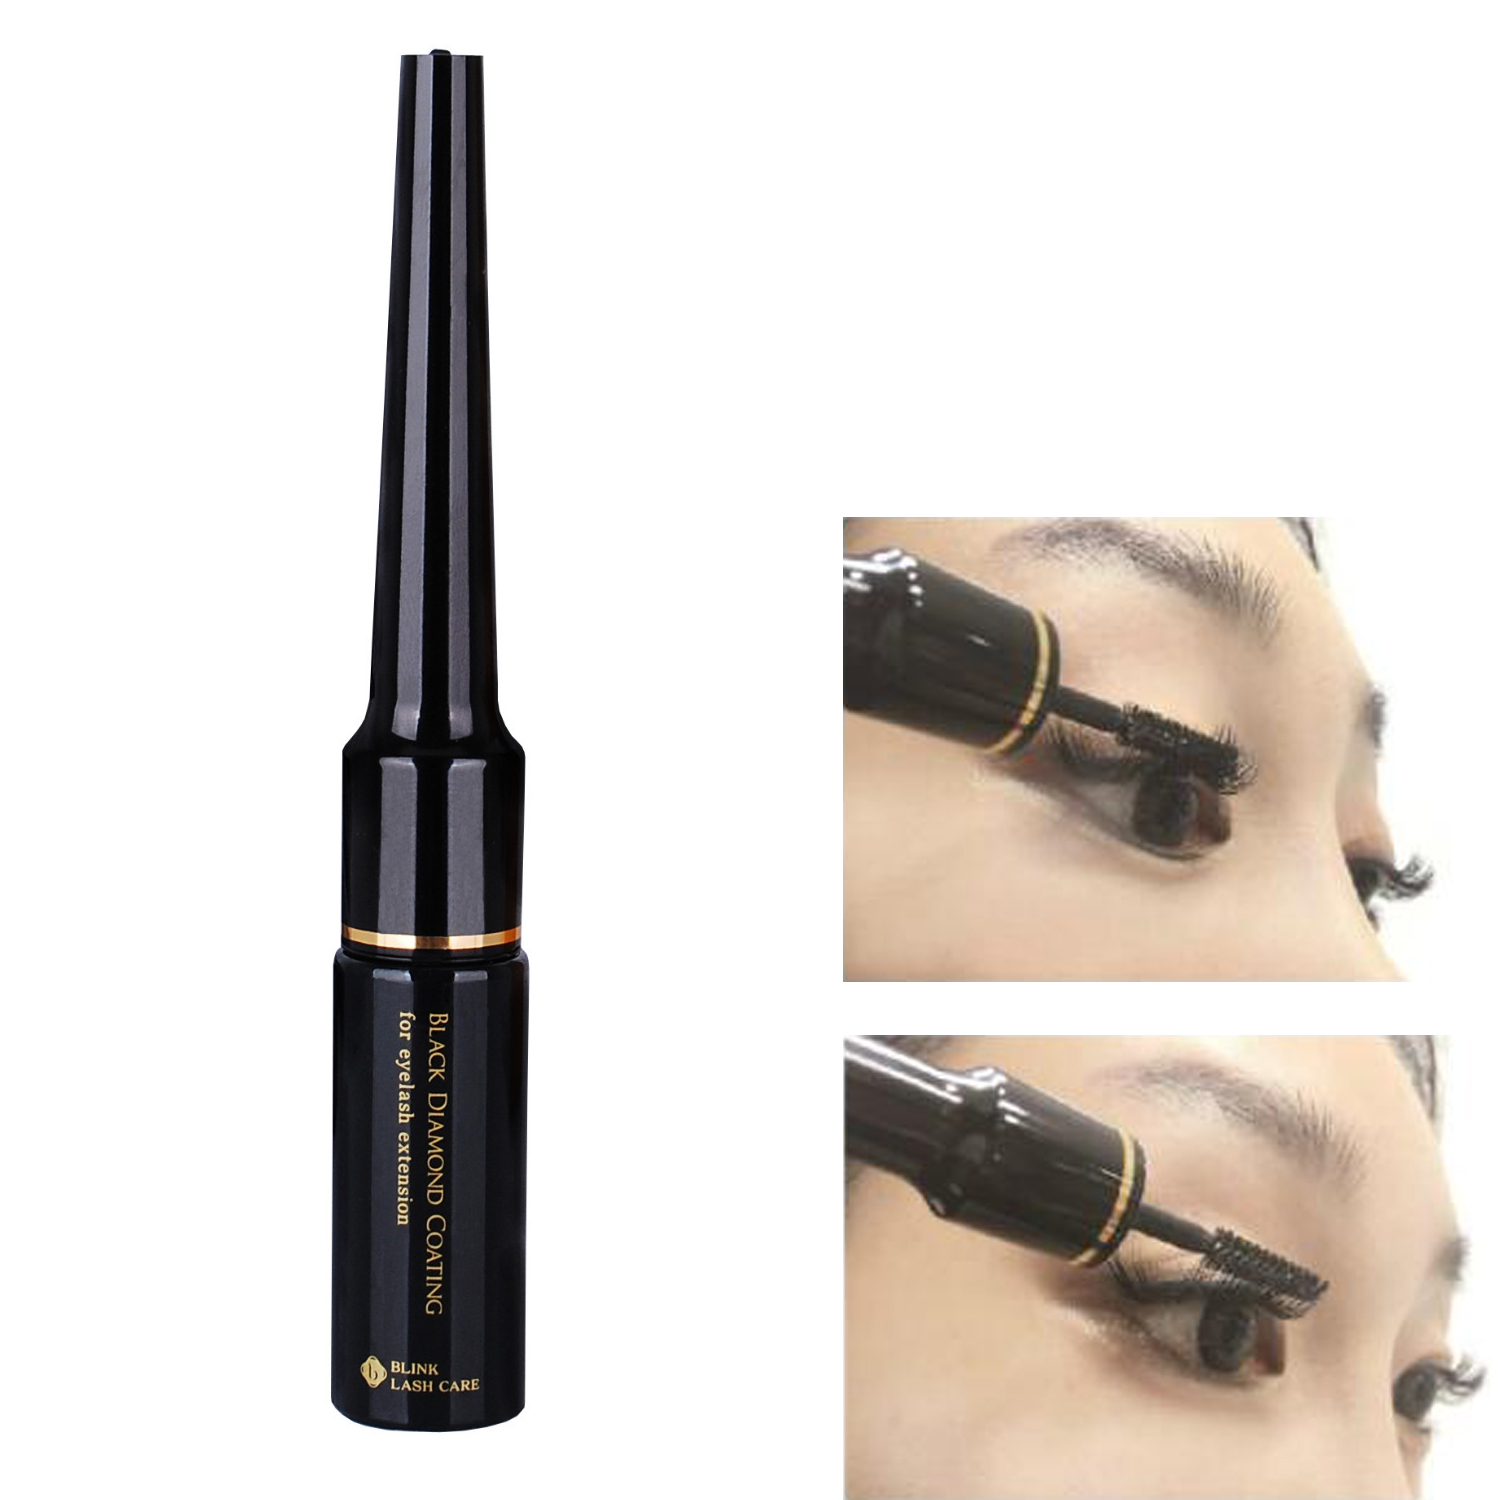 1c77008db5a Eyelash Extensions Blink Black Diamond Coating Sealant // Sealer EyeLash  Store